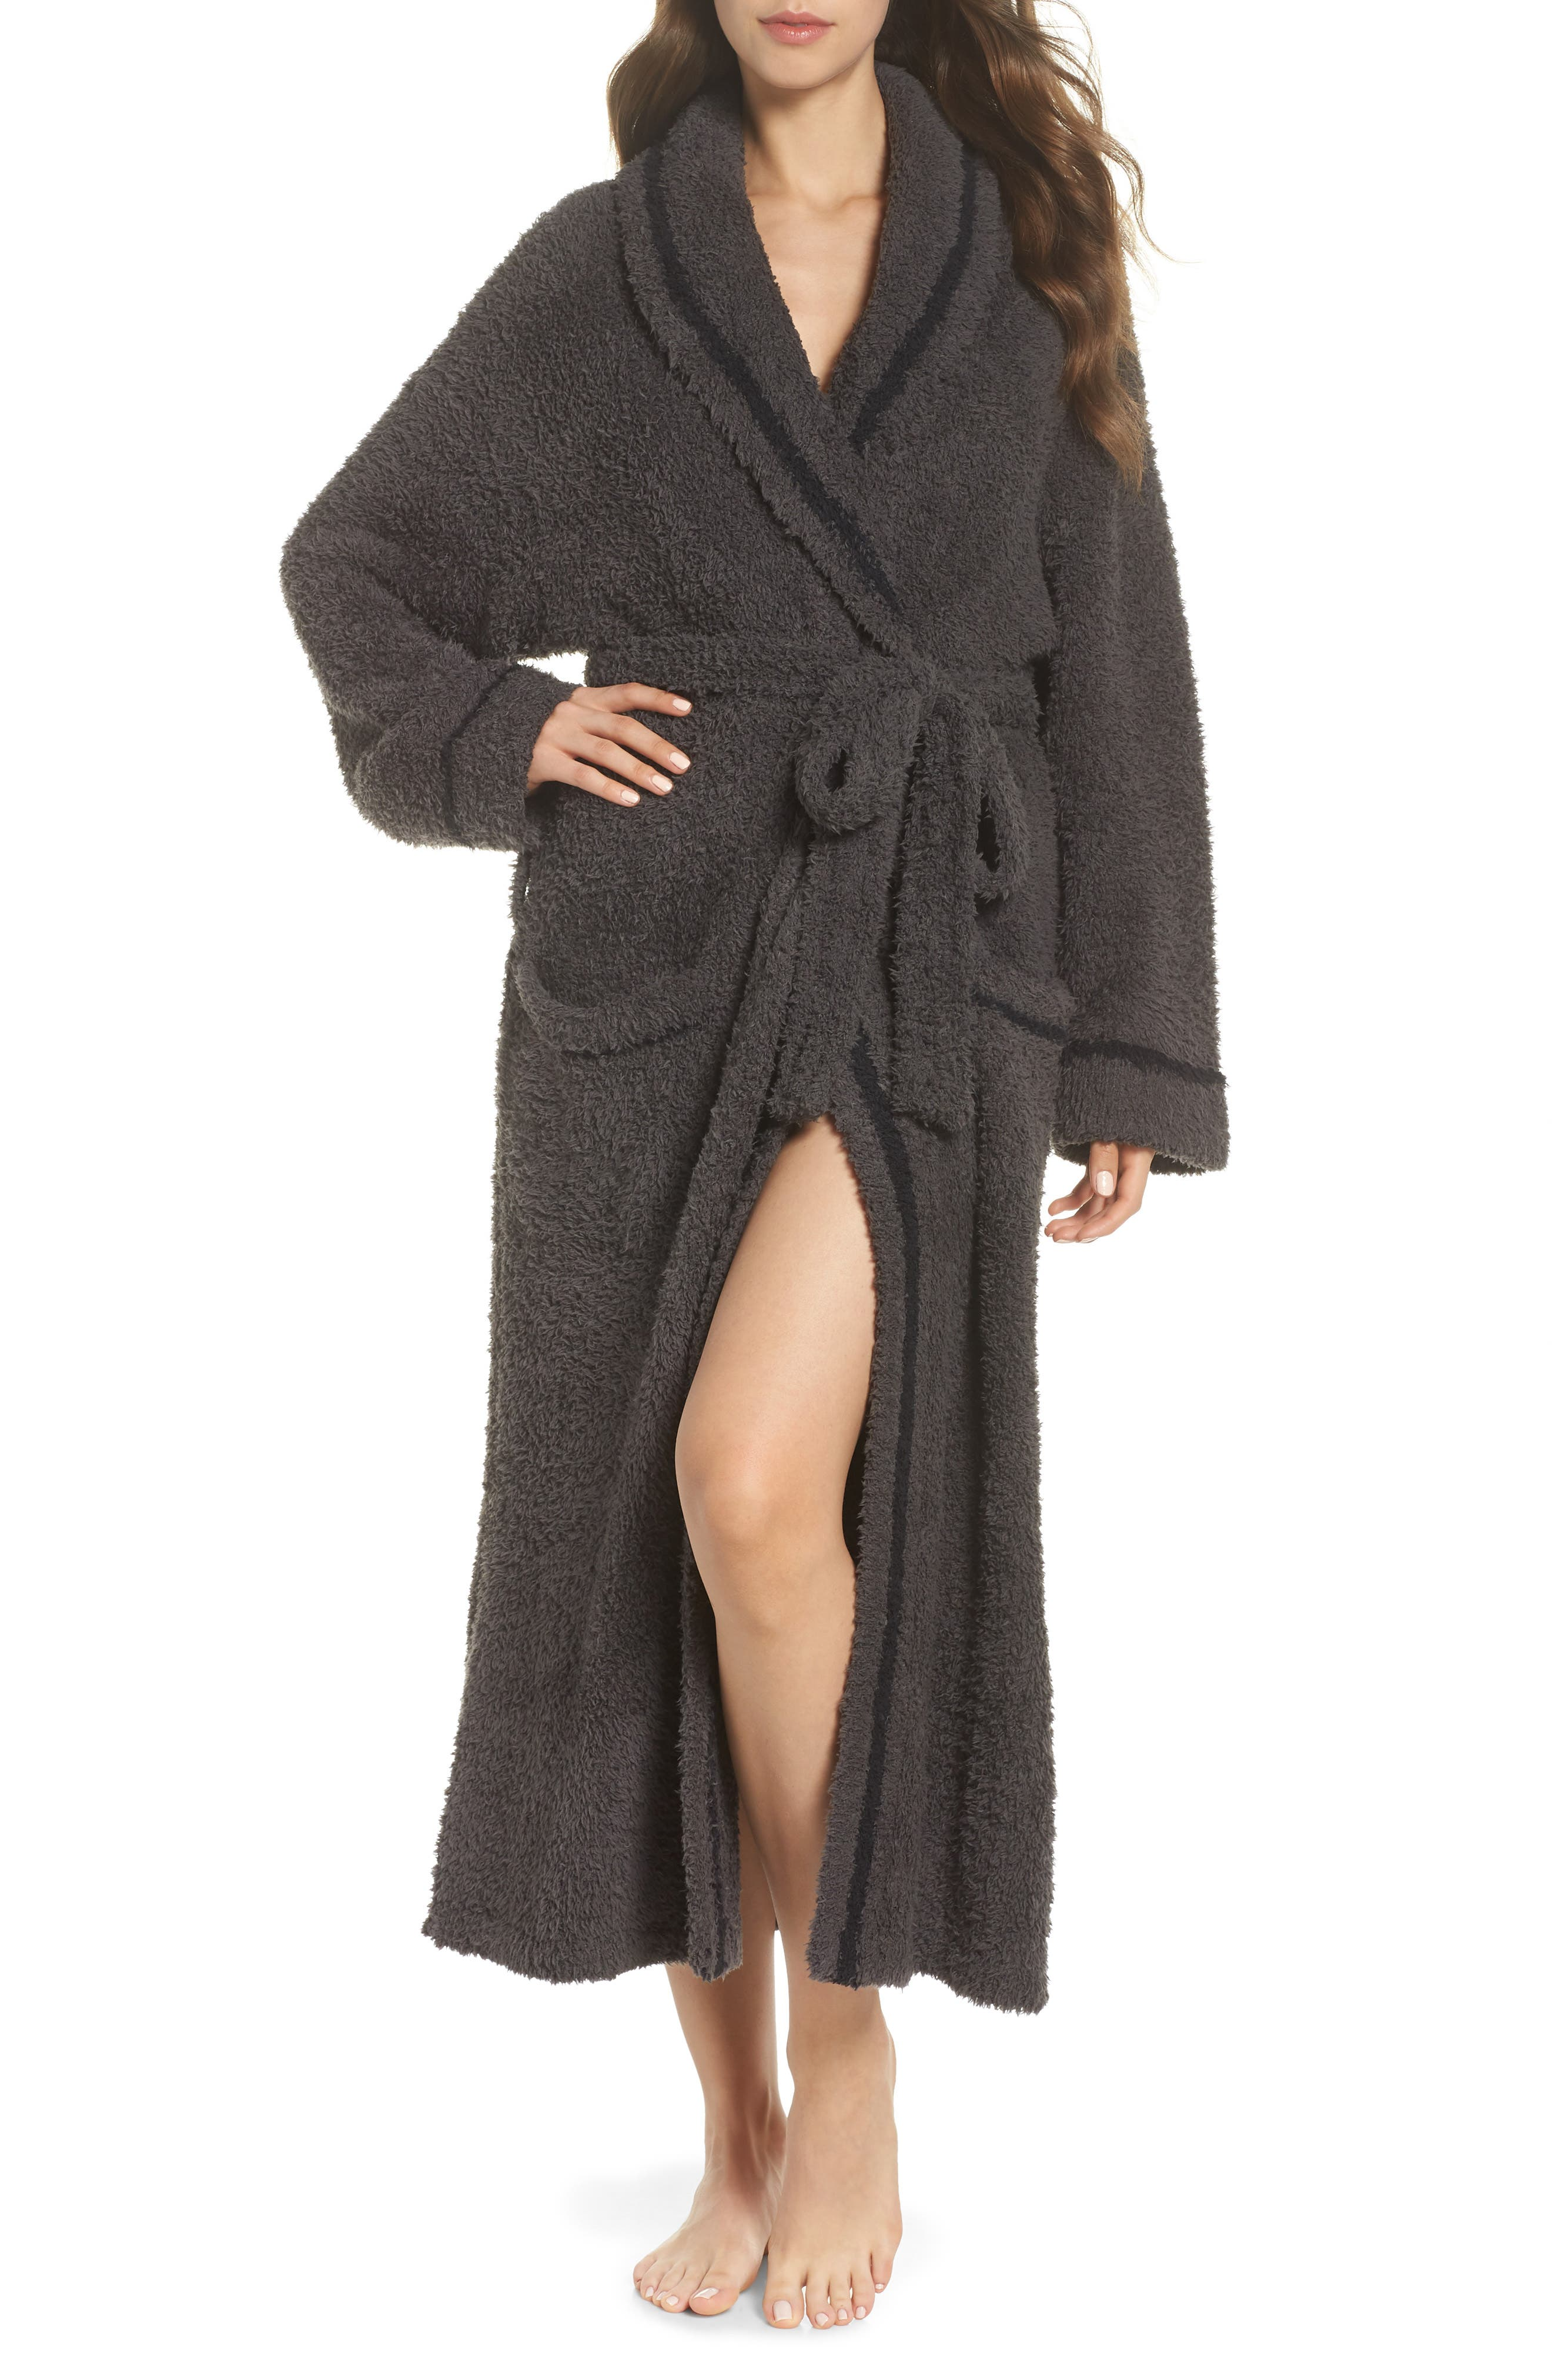 x Disney Classic Series CozyChic<sup>®</sup> Robe, Main, color, CARBON/ BLACK